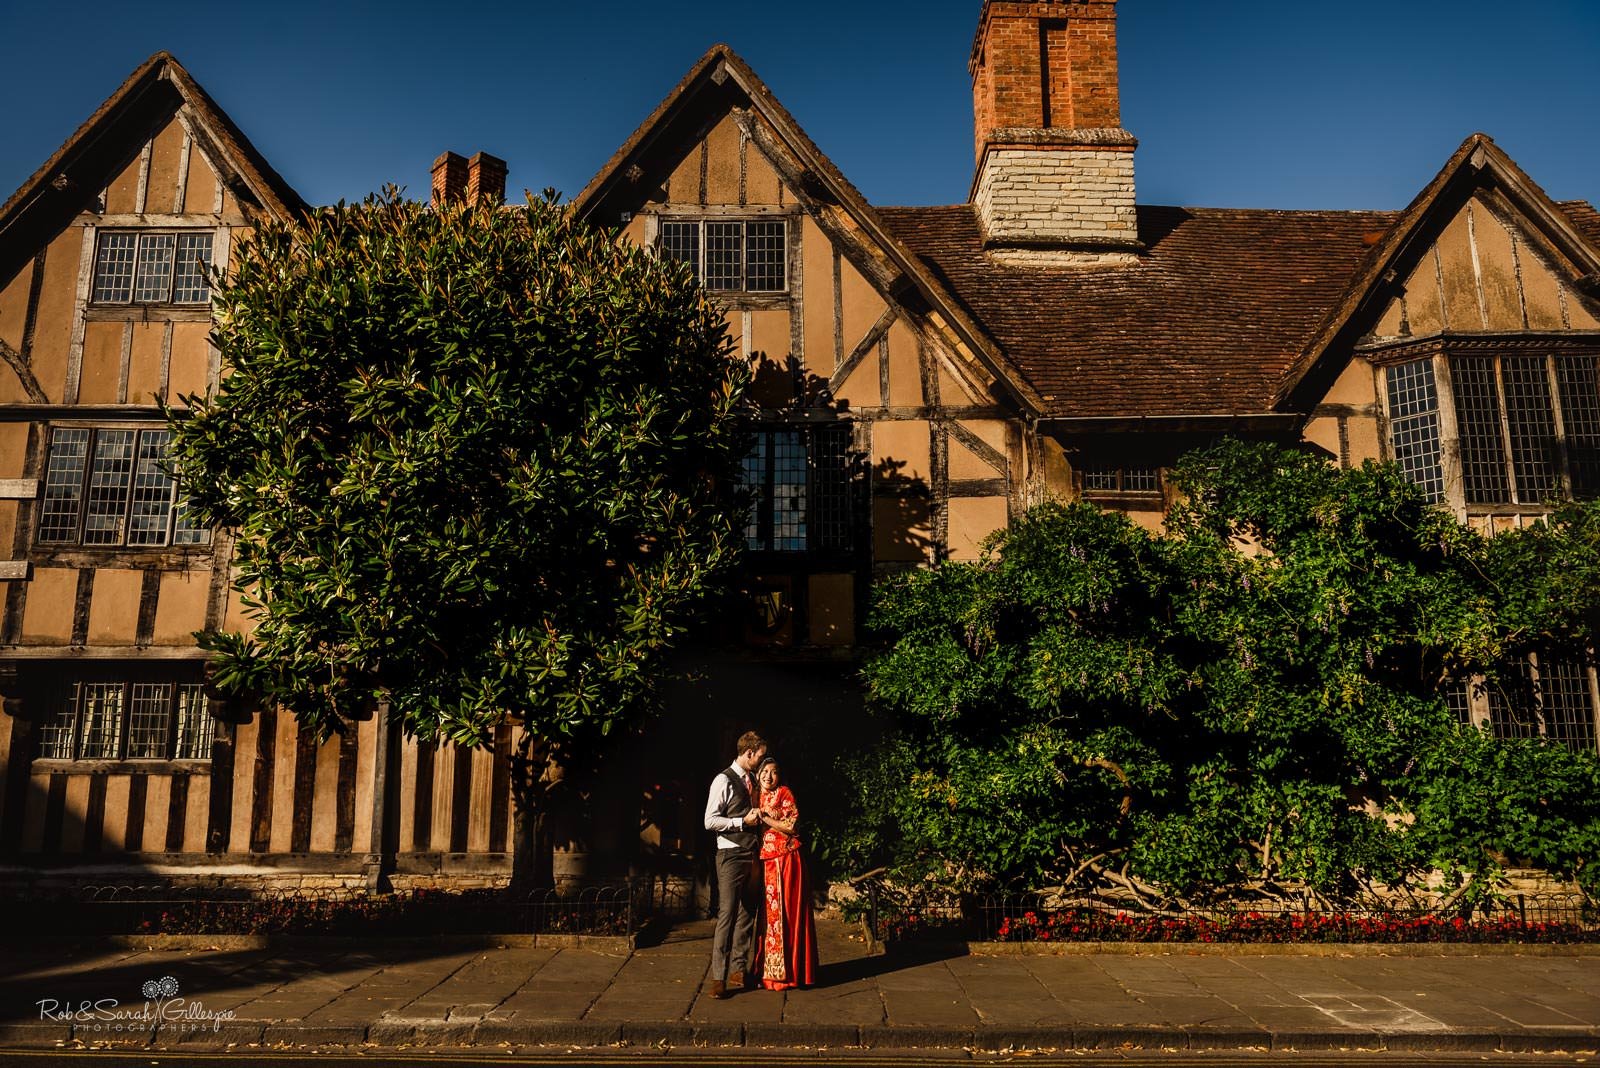 Bride and groom outside old building in Stratford upon Avon